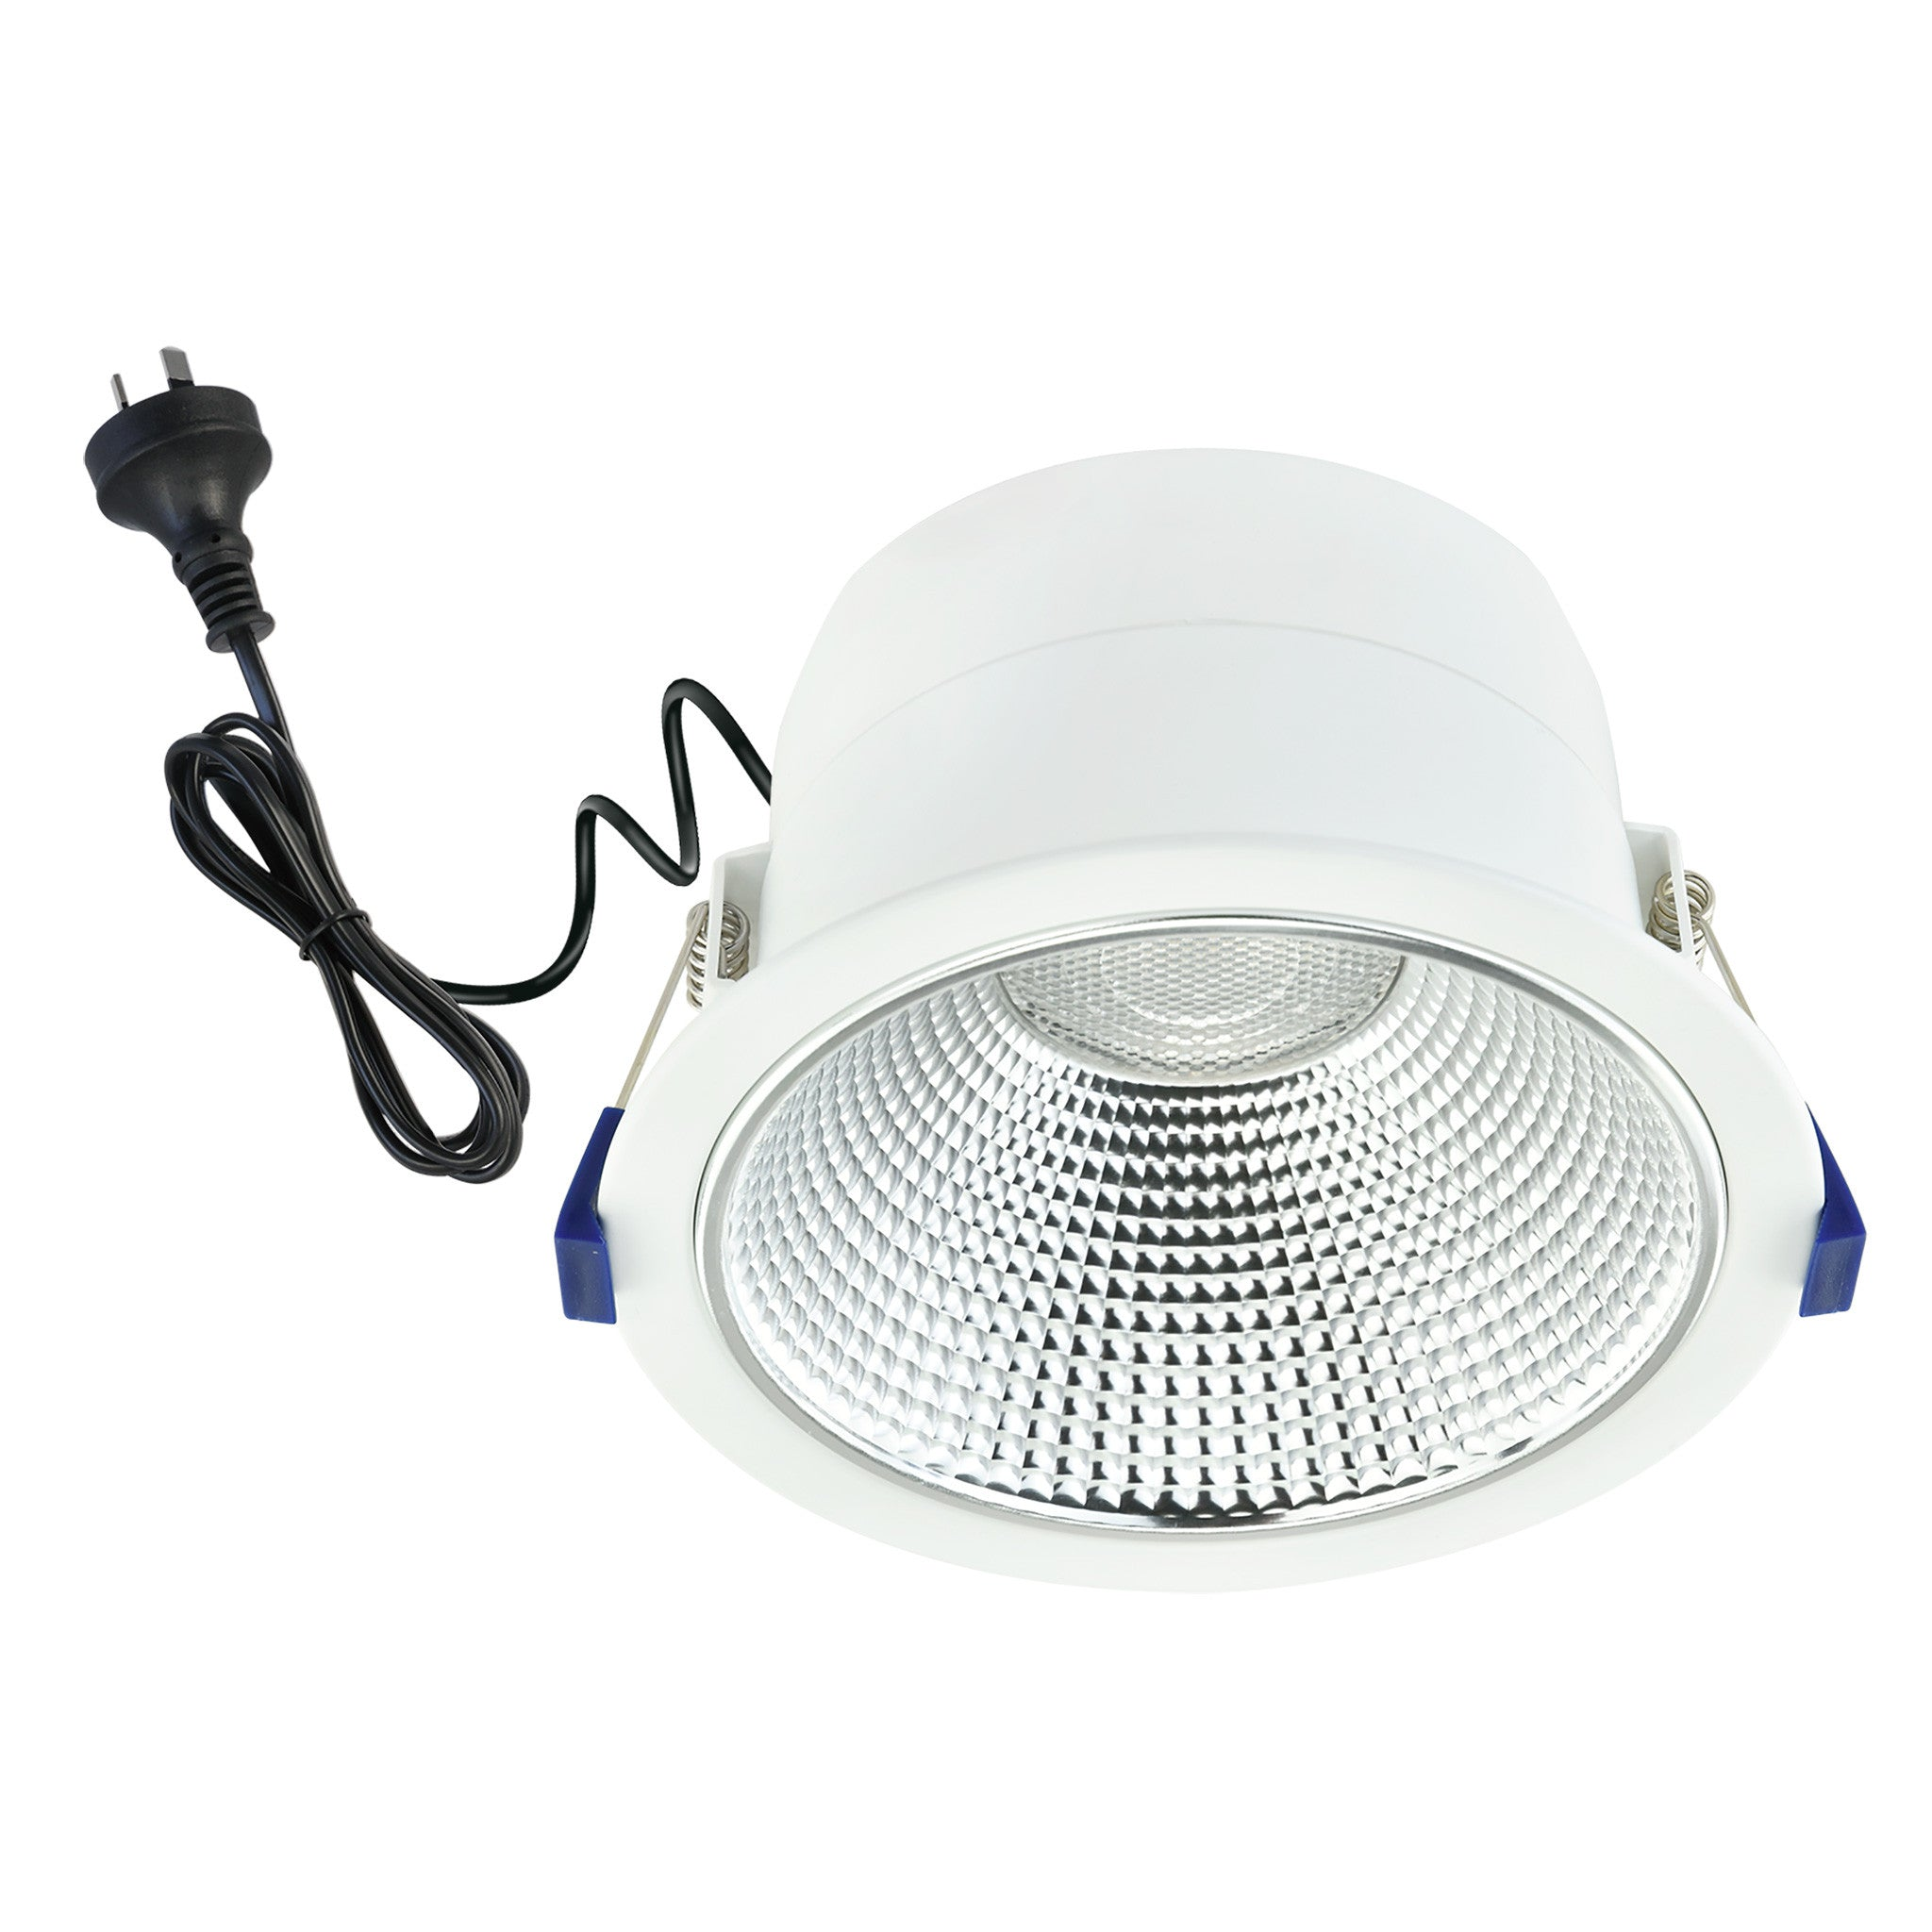 sneakers for cheap 2fc4a 4251d 18w LED downlight, 150mm, Protail, Energetic Lighting